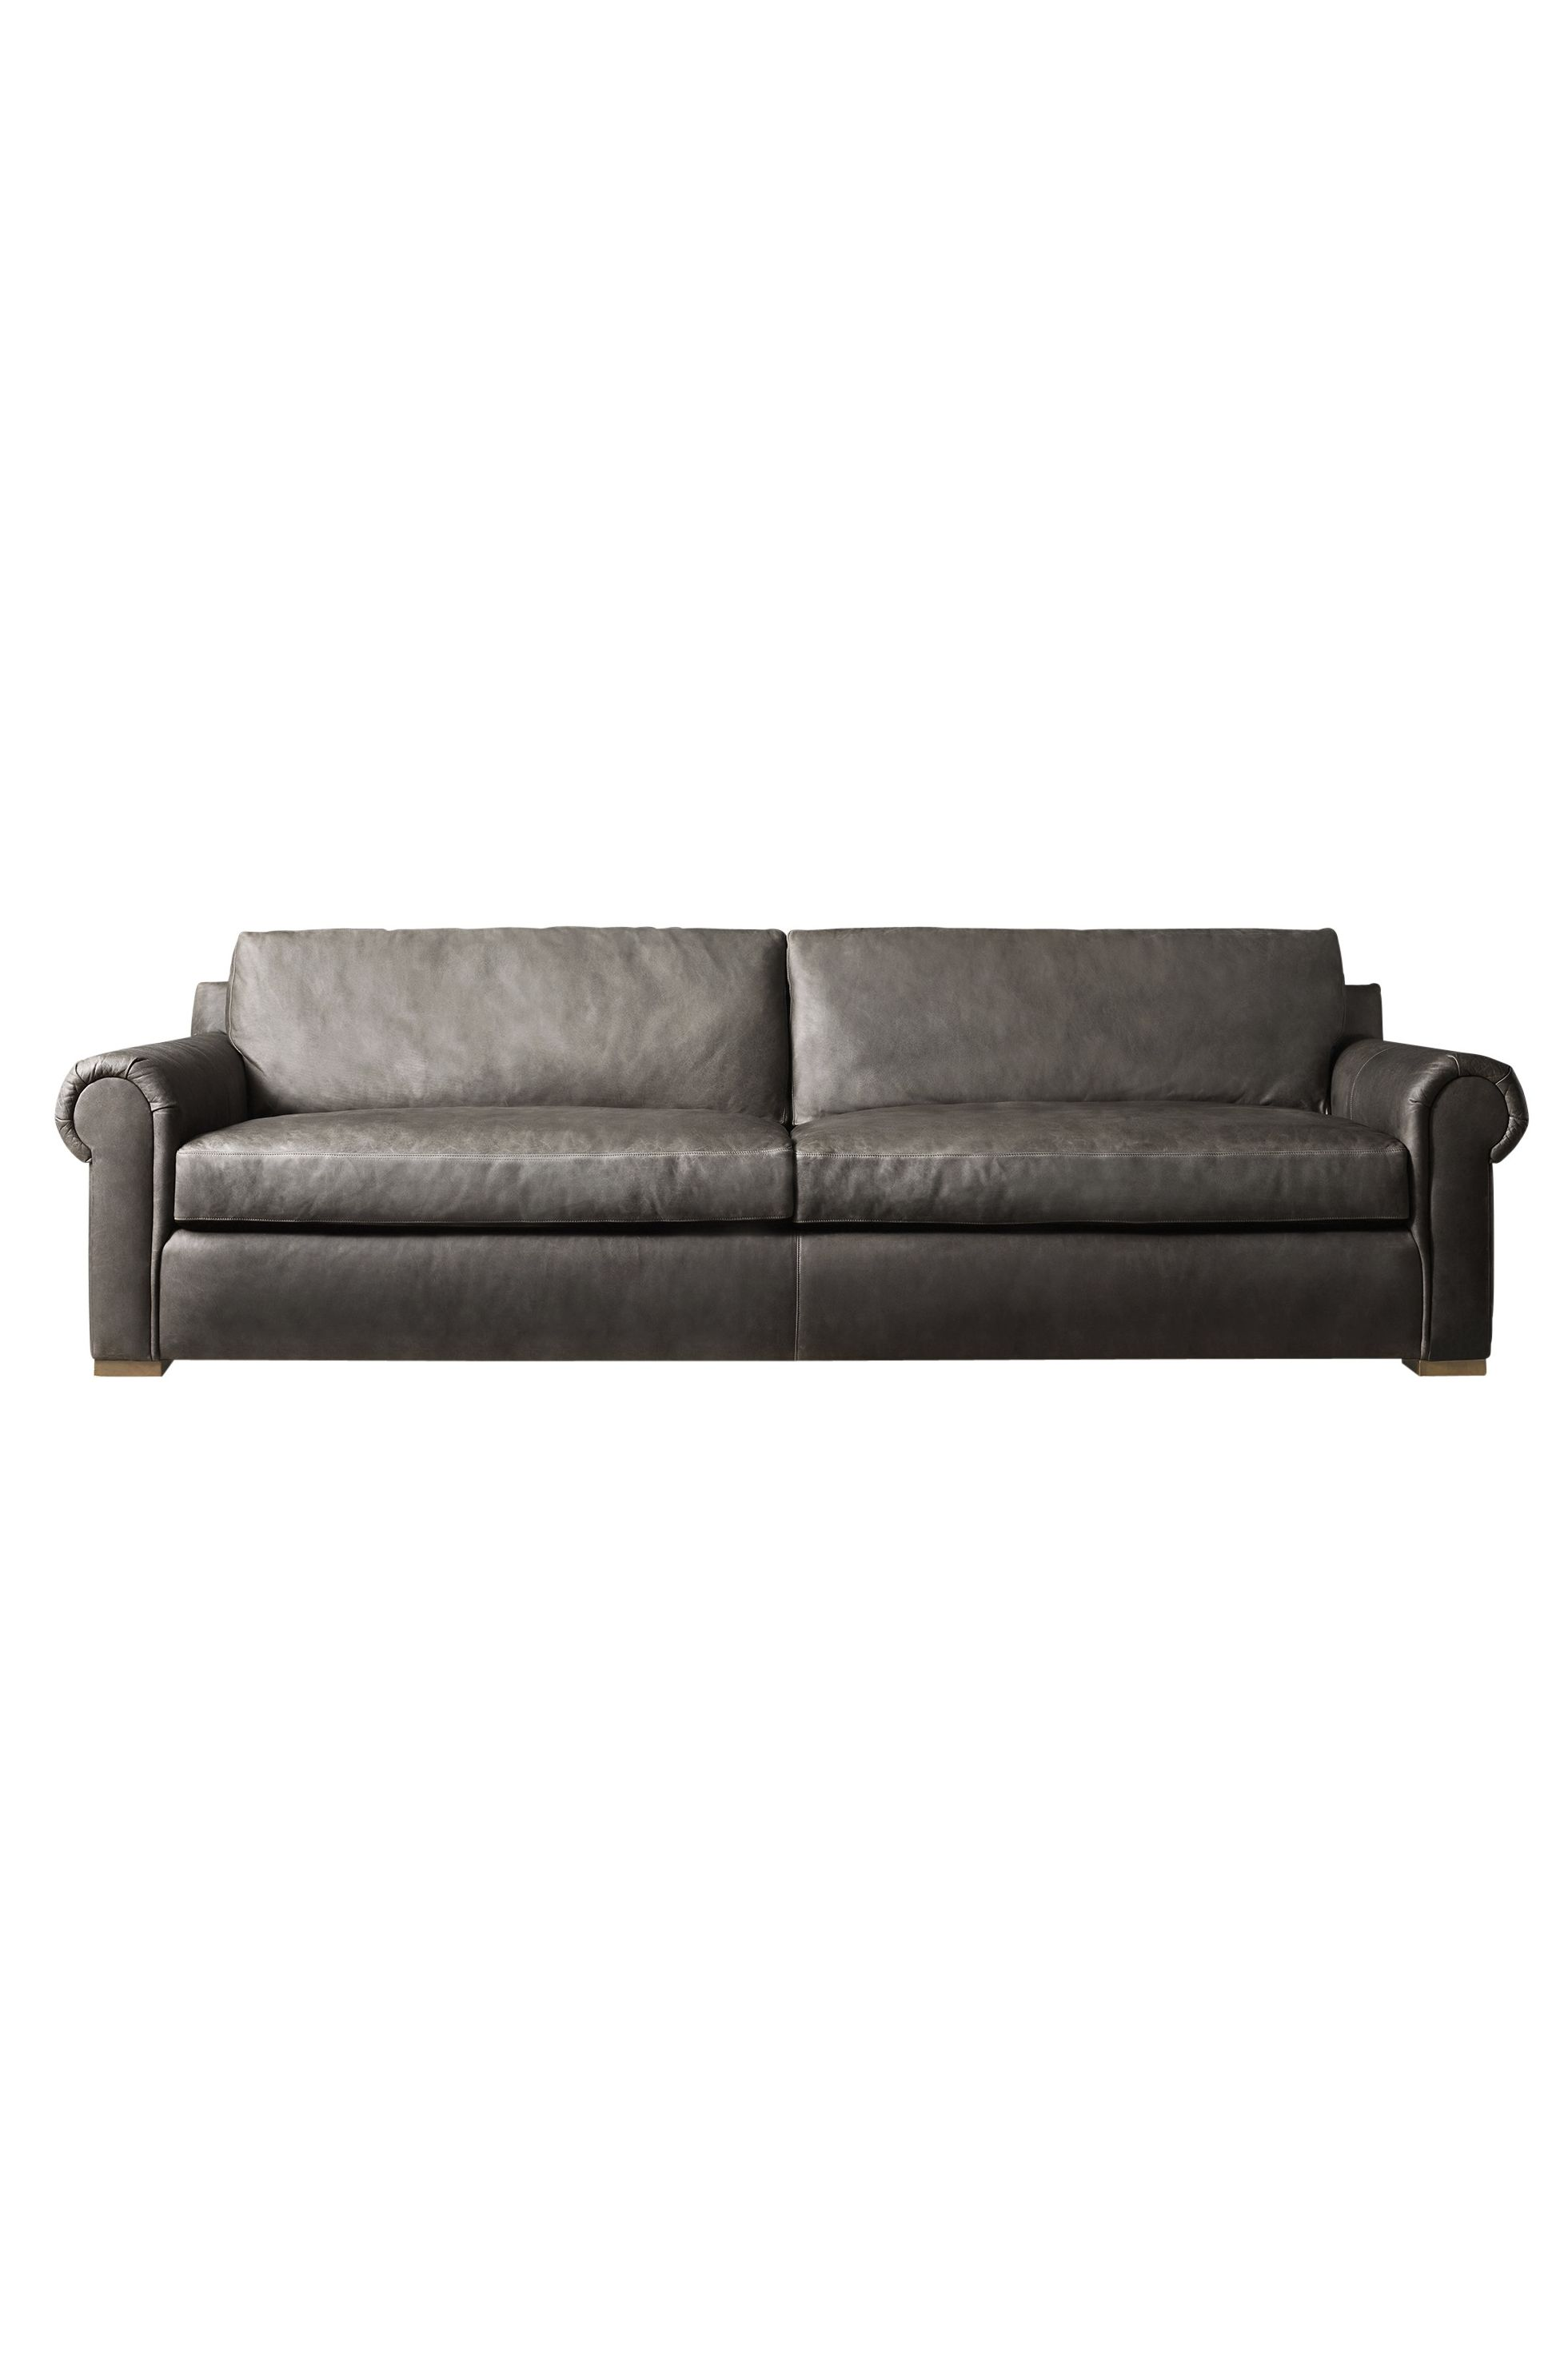 13 Best Cheap Sofas Under $3000 – Top Inexpensive Couches